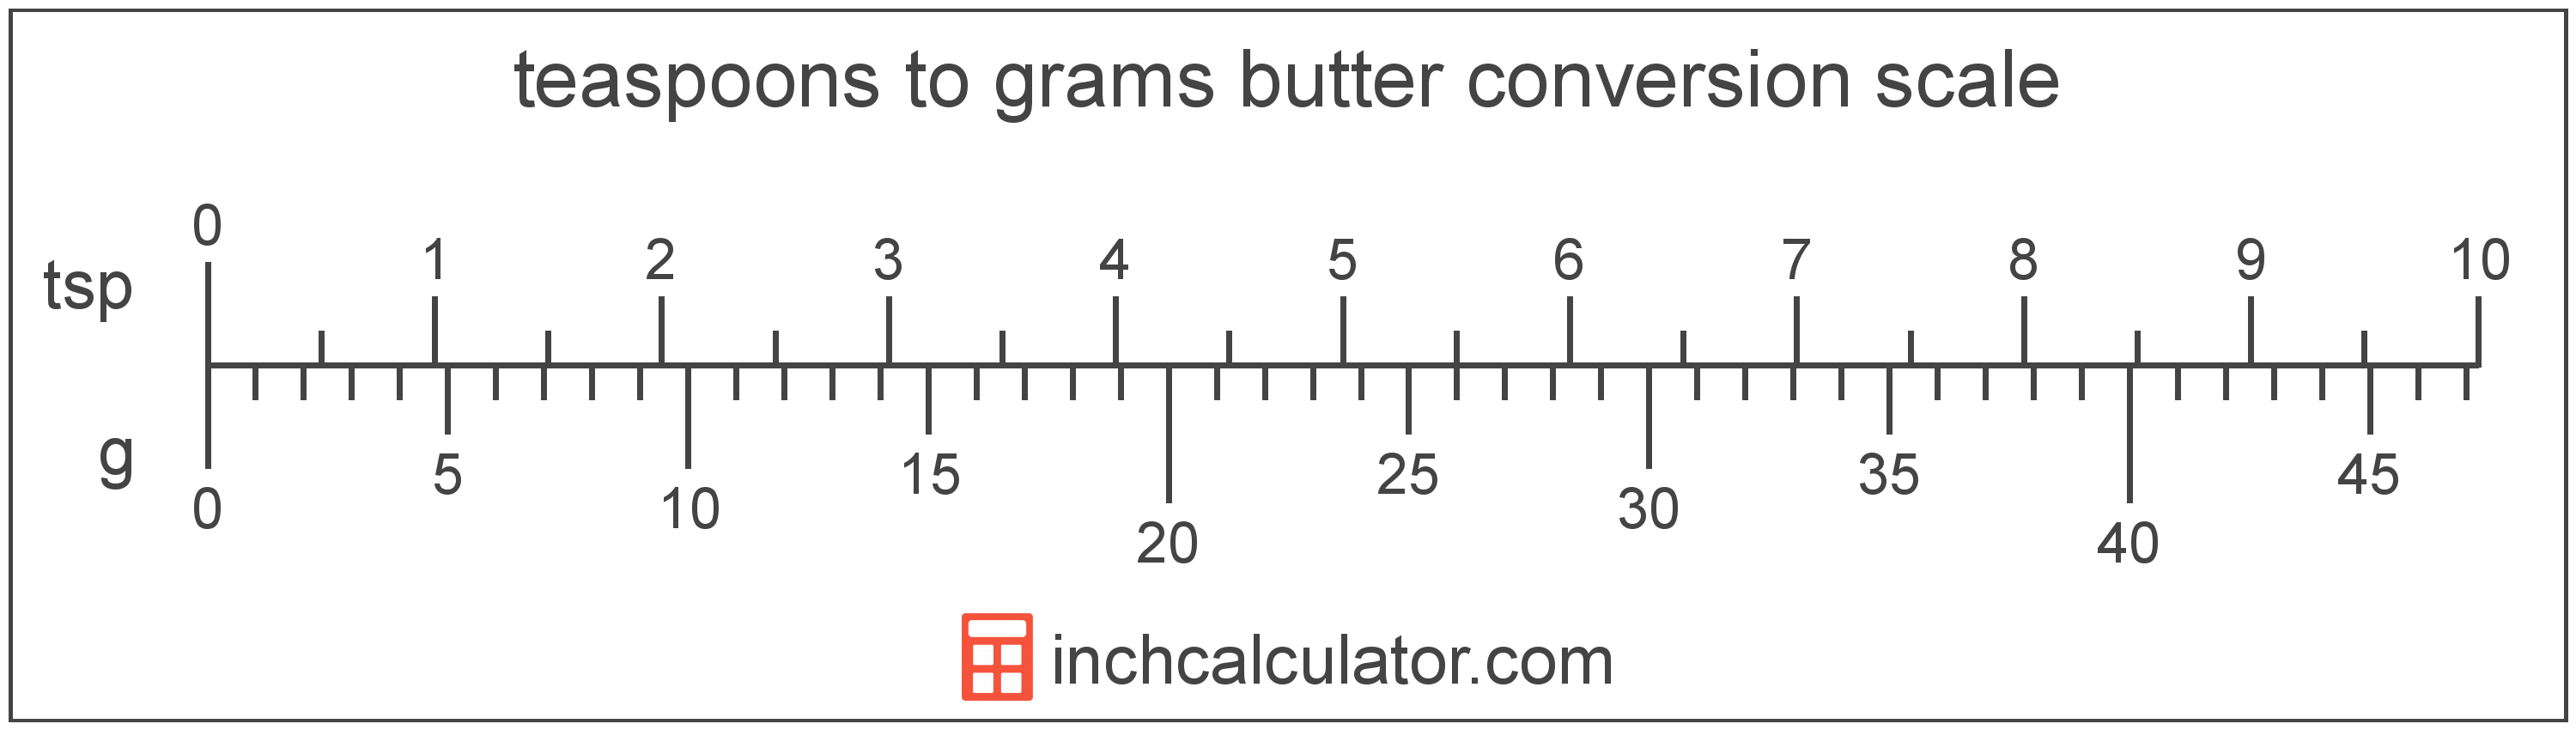 conversion scale showing grams and equivalent teaspoons butter values